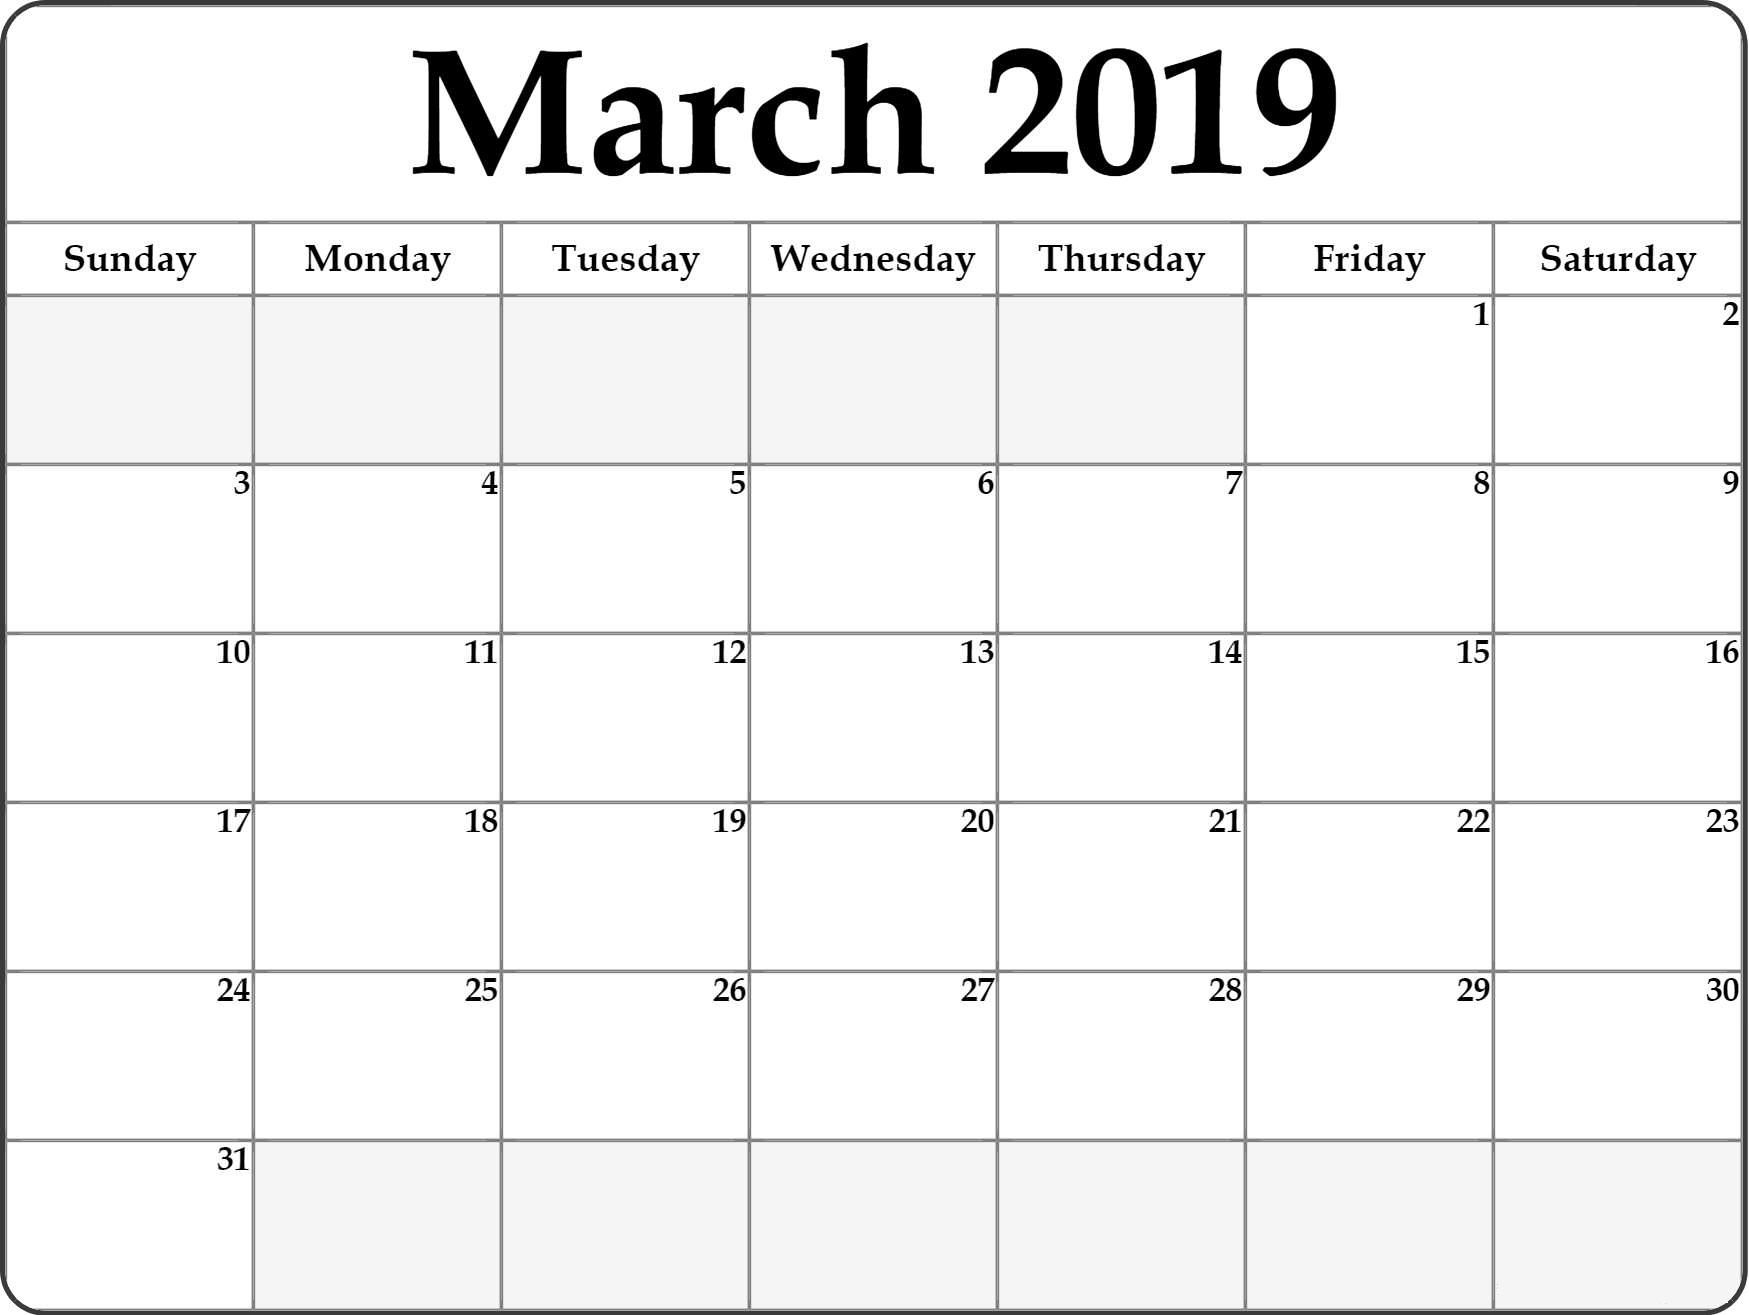 March Comes As Third Month Of The Year With Total Of 31 Days